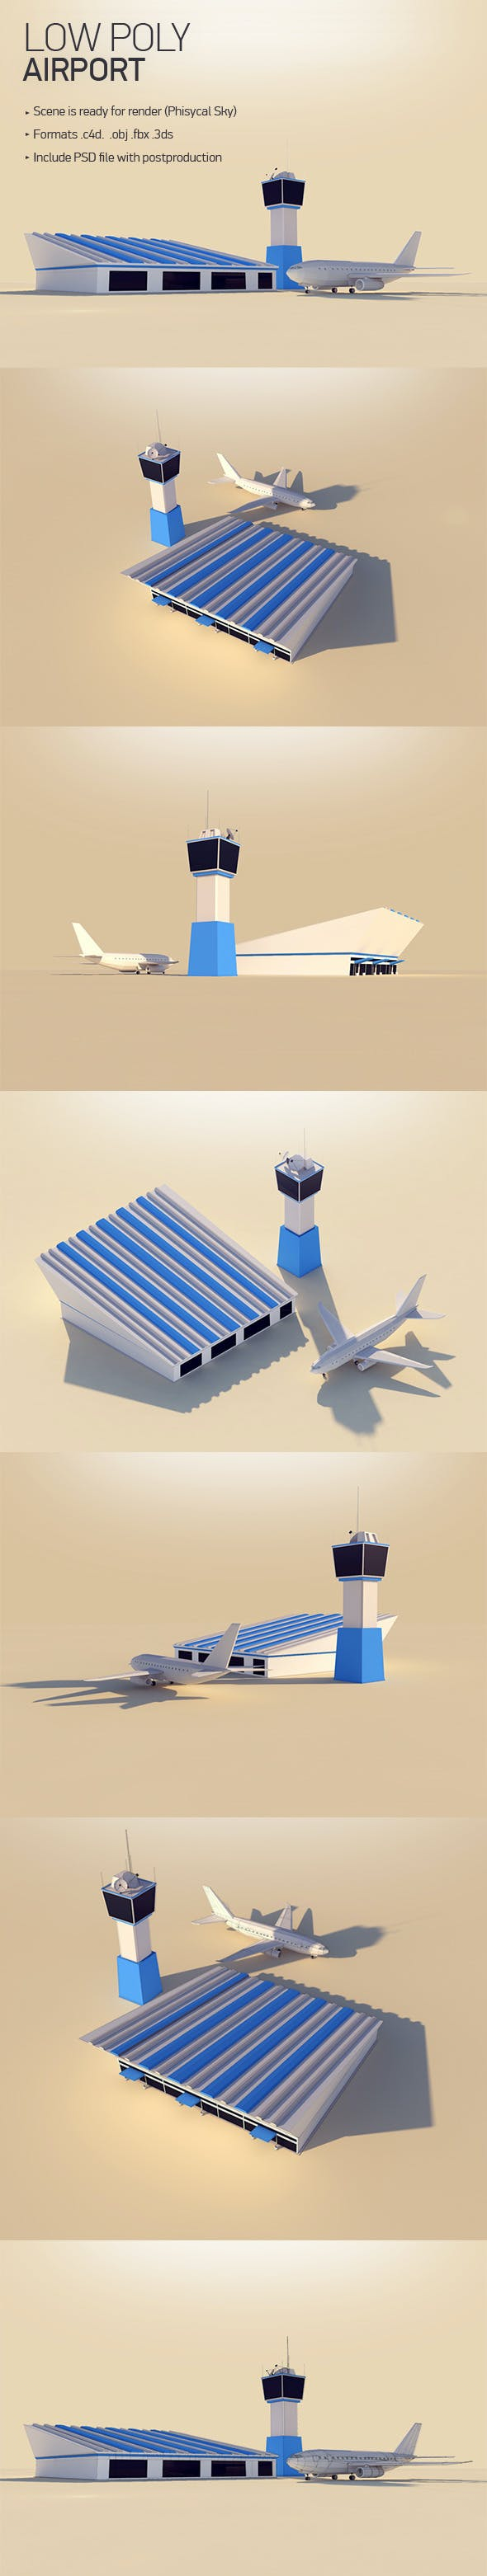 Lowpoly Airport - 3DOcean Item for Sale